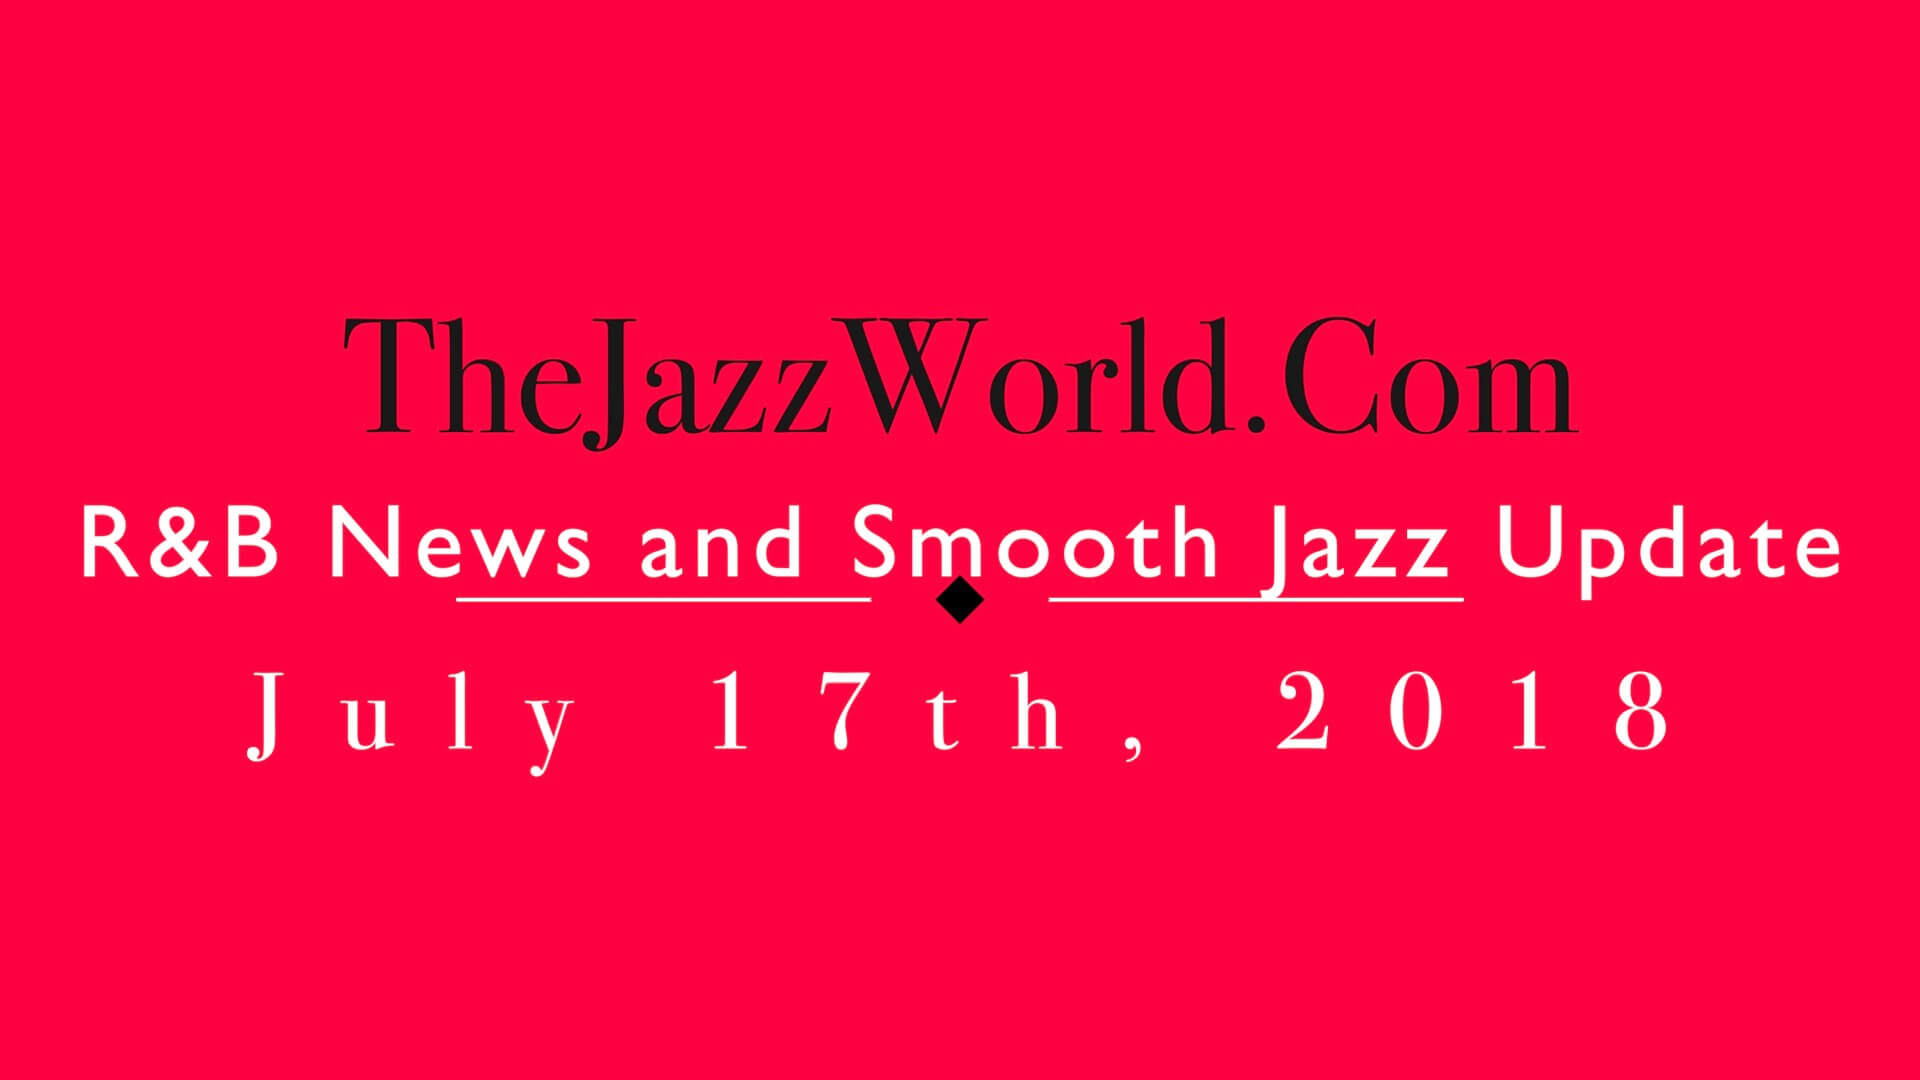 Latest R&B News and Smooth Jazz Update July 17th